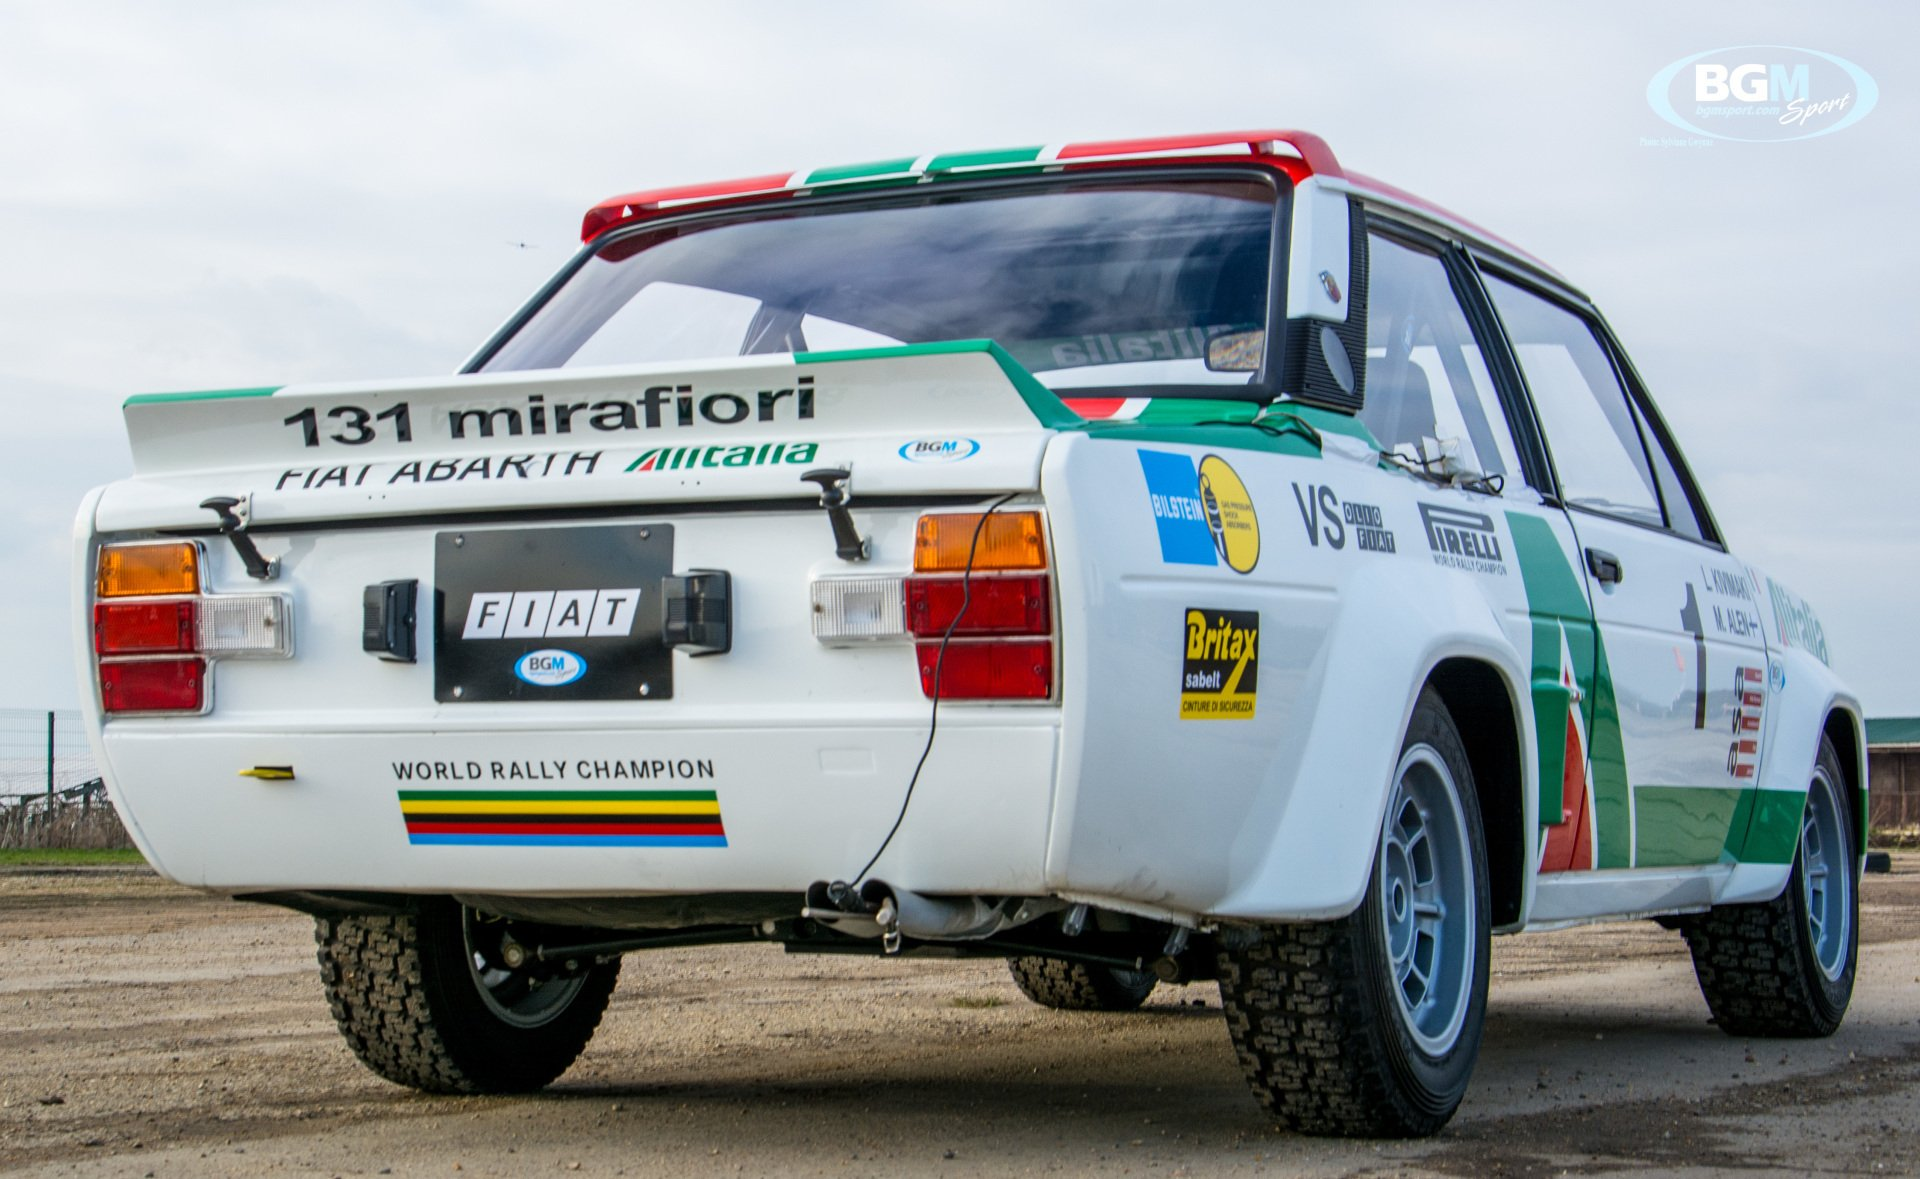 fiat-131-abarth-grp-4-rally-car-44